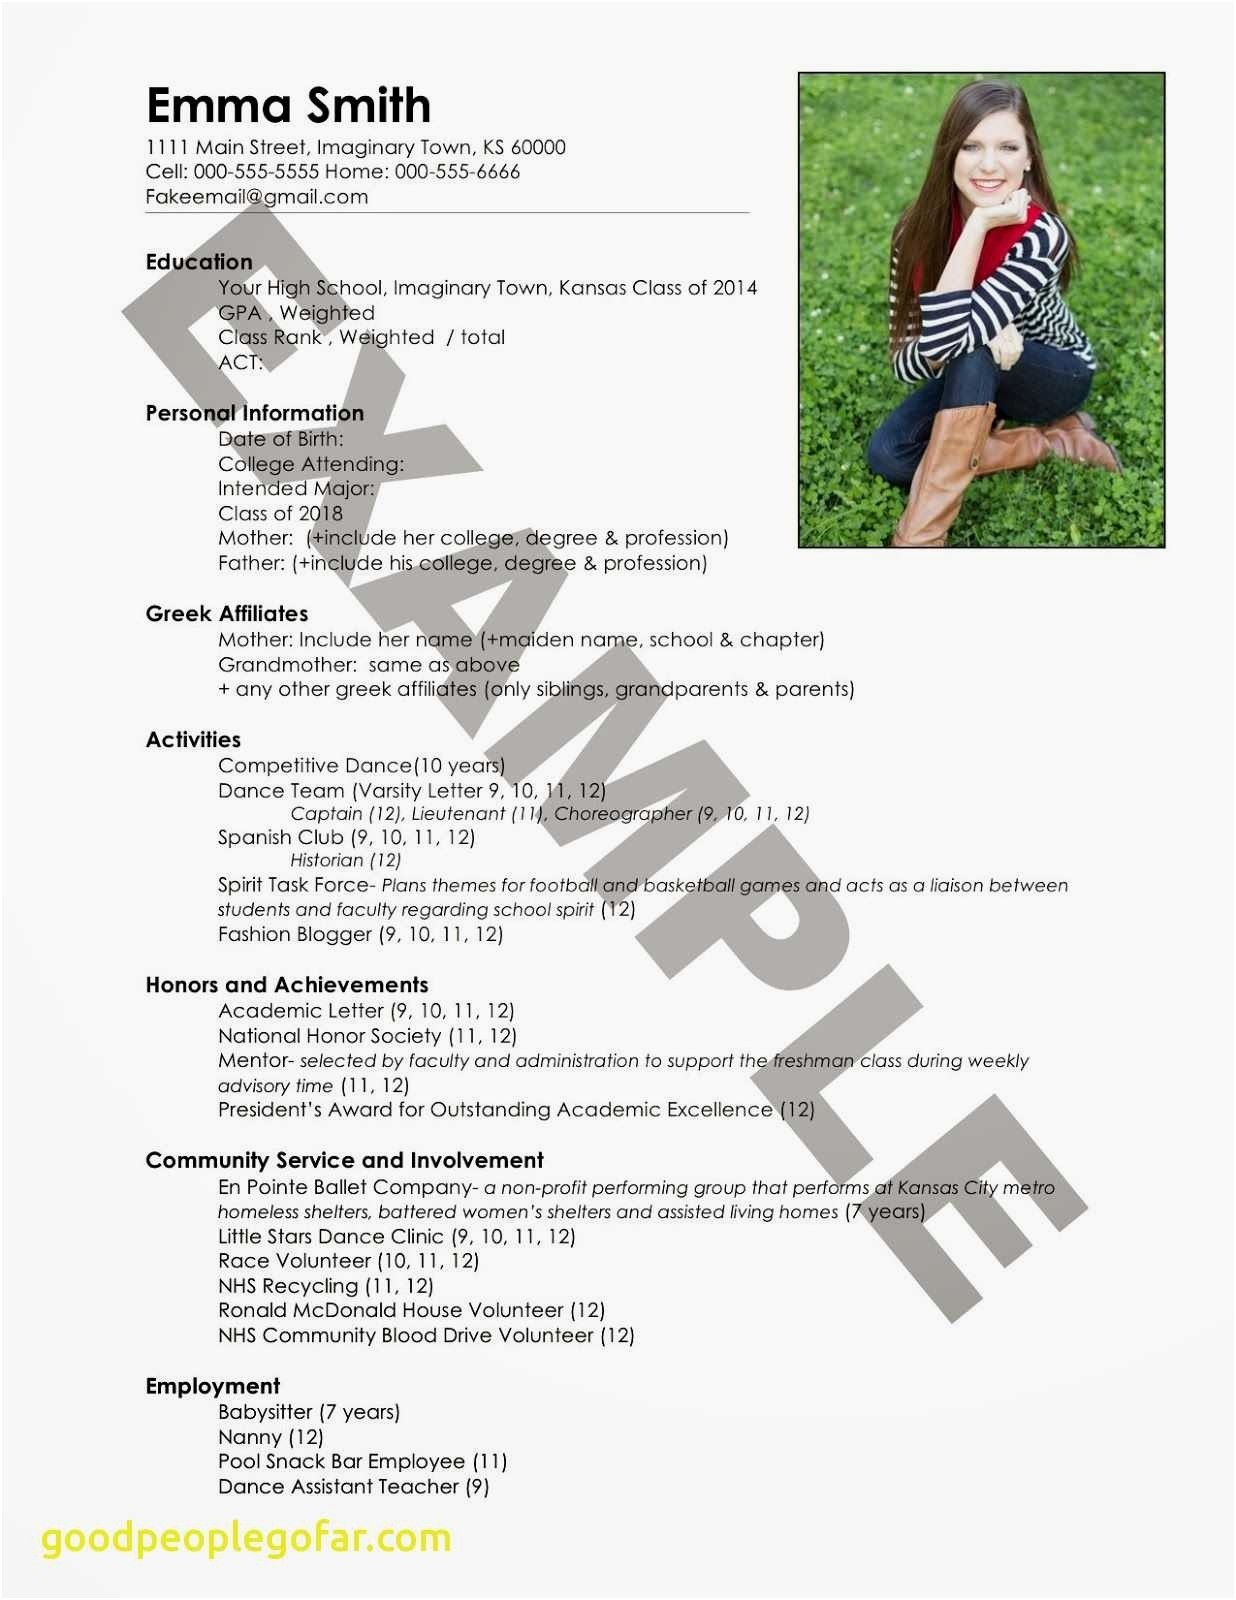 Education Section Of Resume - Education Section Resume Luxury 20 Objective for College Resume